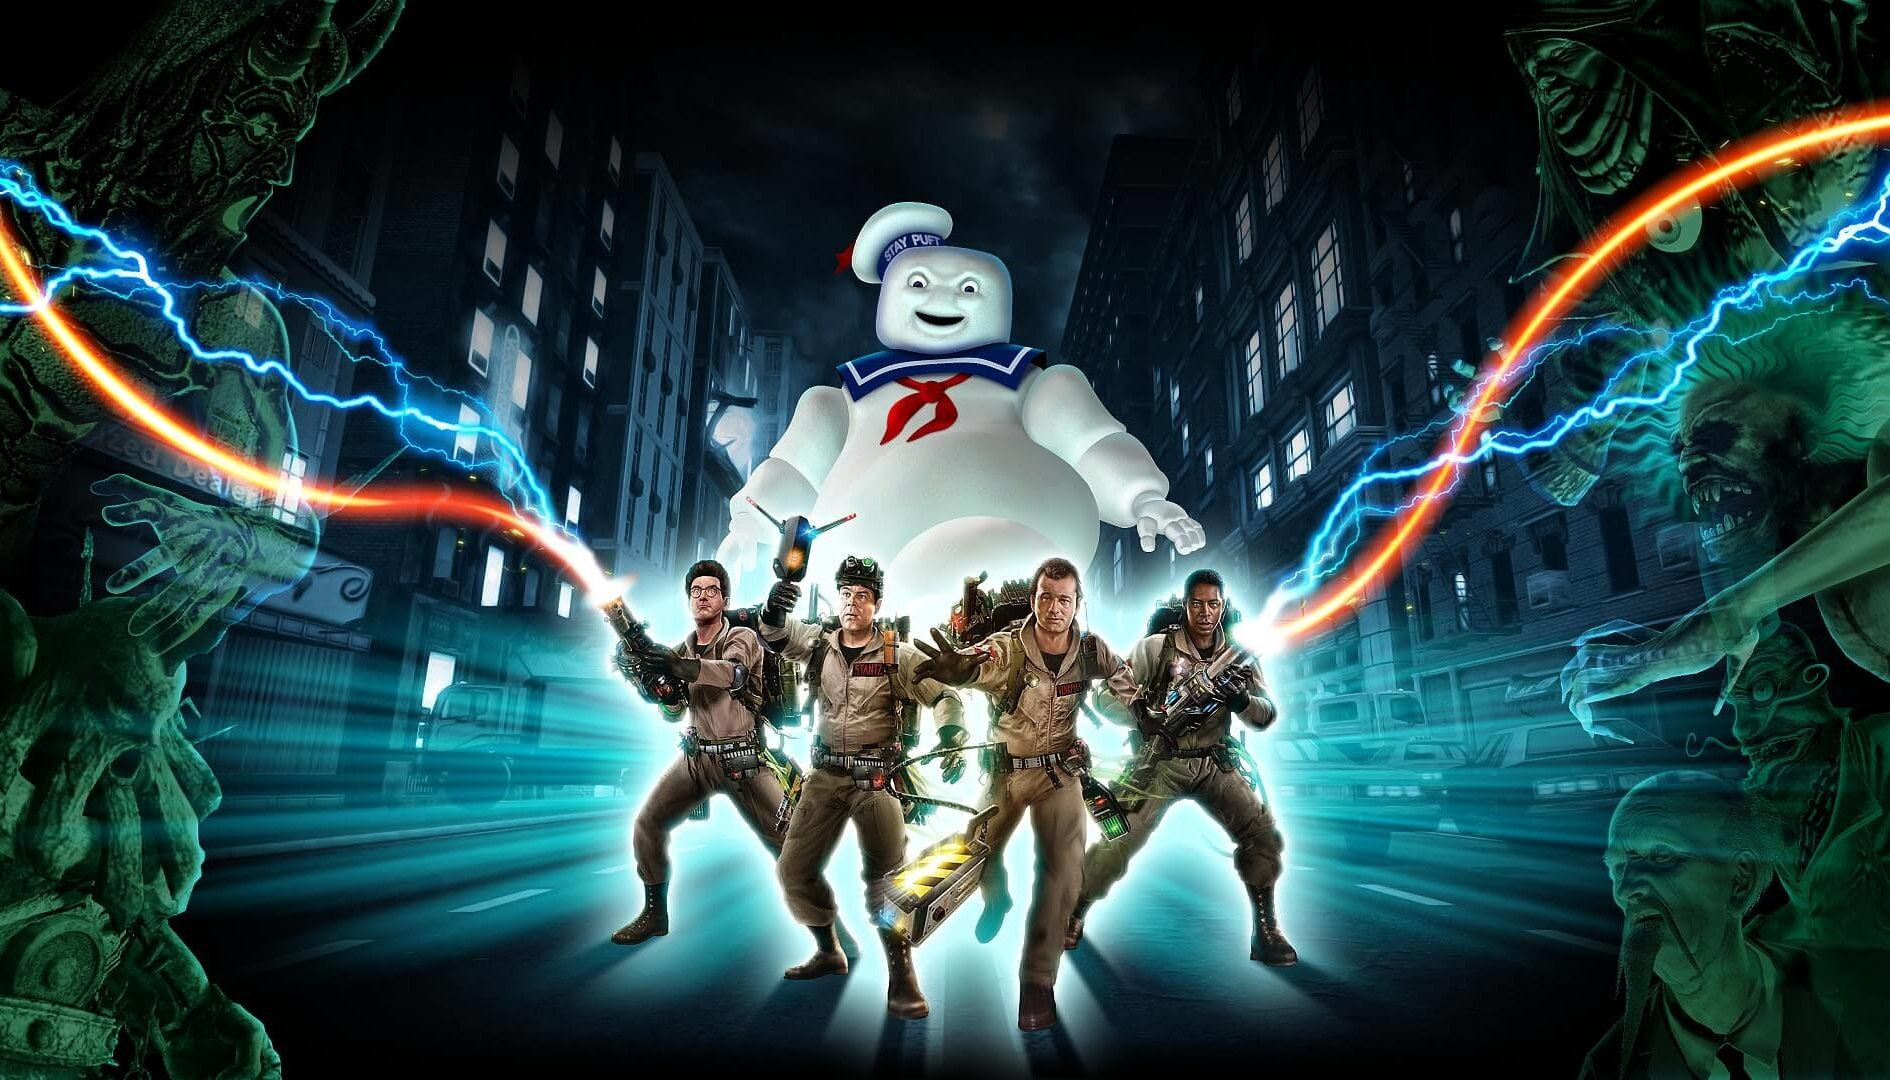 Ghostbusters Video Game Remastered, annunciata la data di uscita